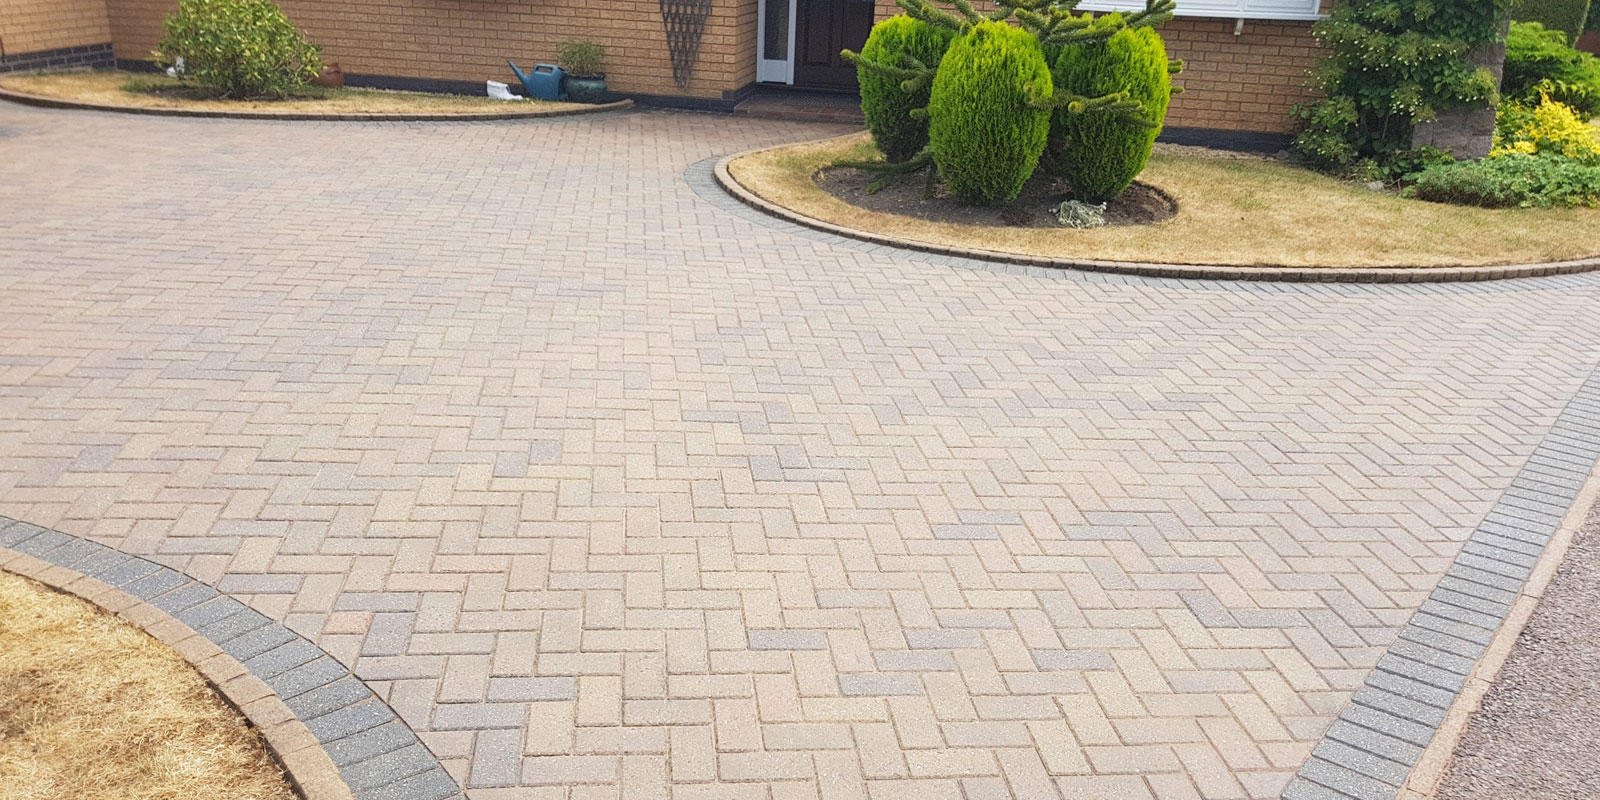 driveway block paving leicester front garden